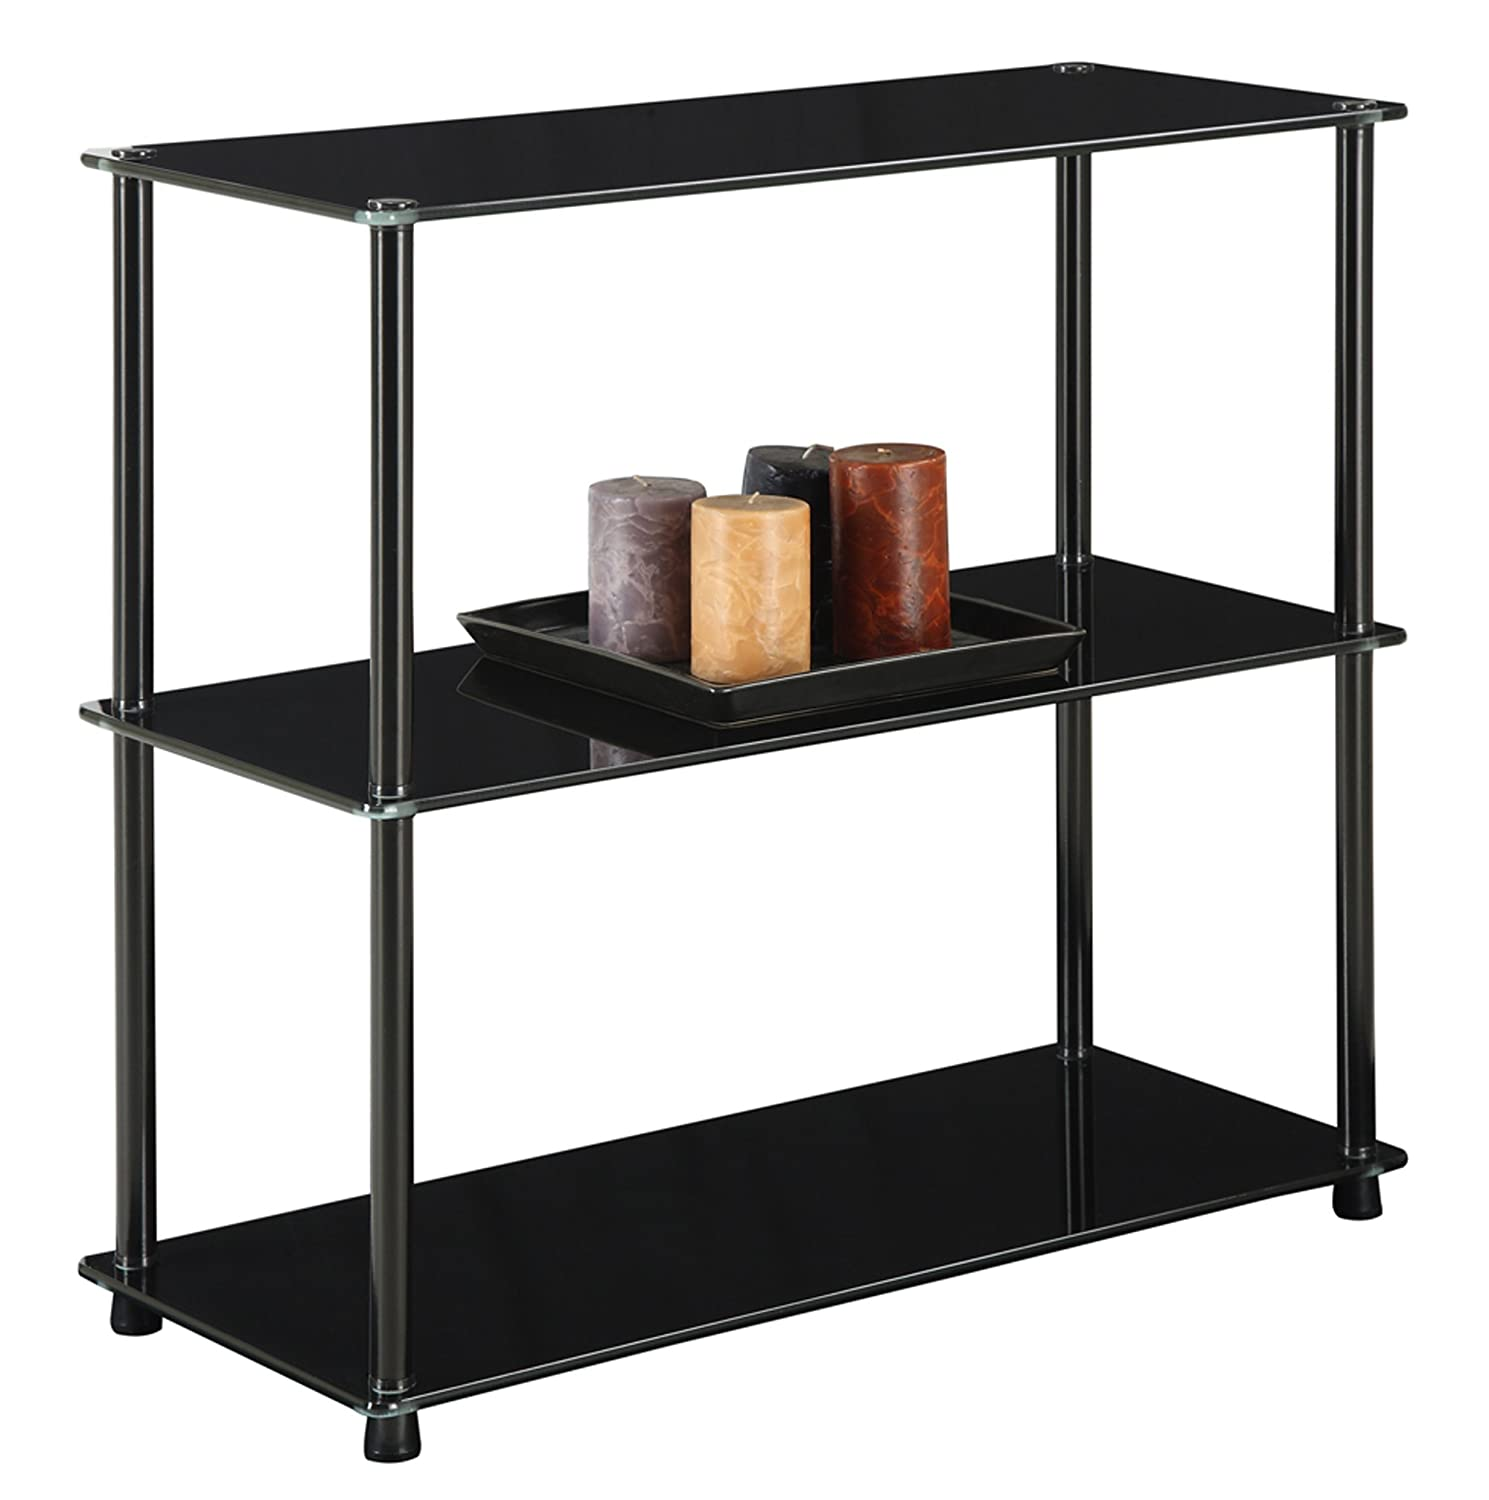 ladder market bexley do office tier world metal home bookshelves bookcase bookcases xxx category furniture